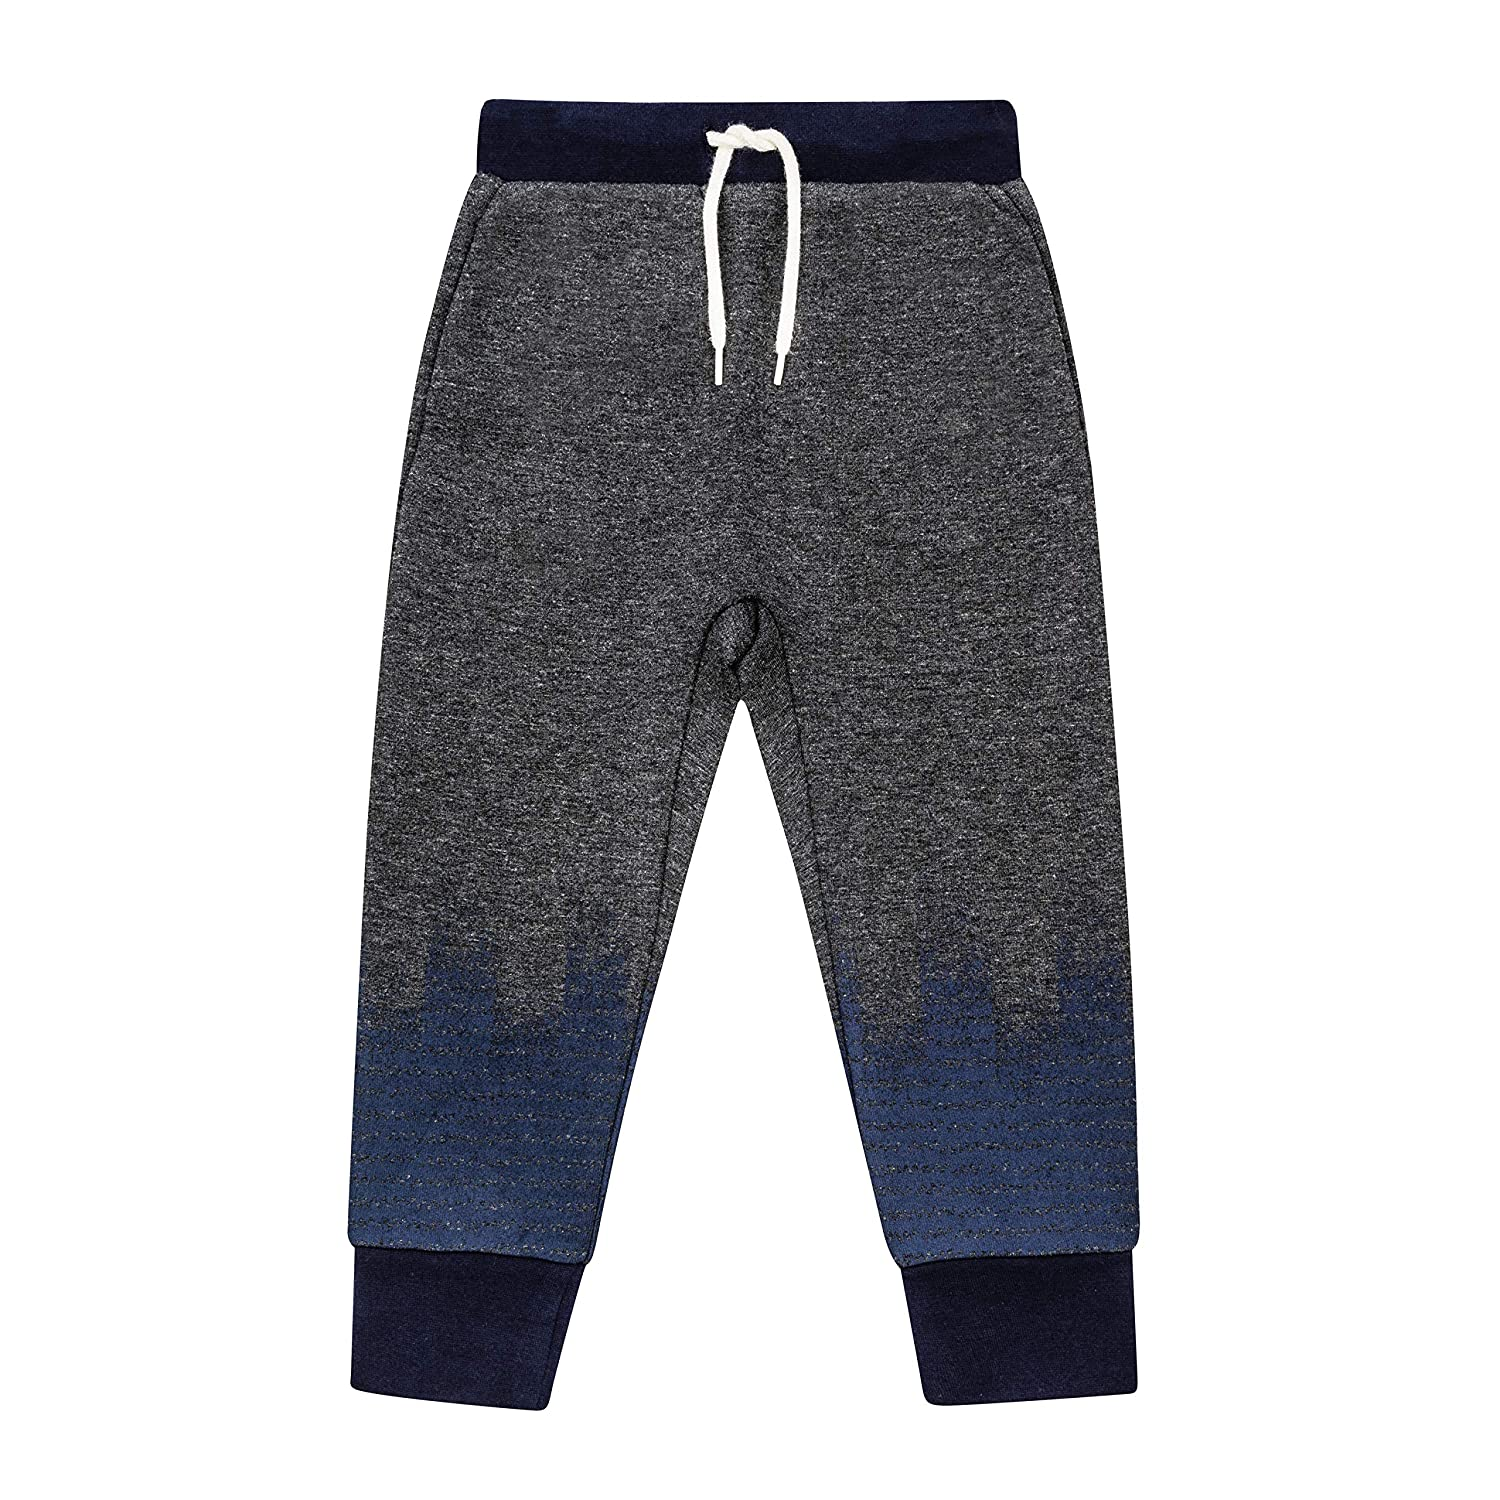 Petit Lem Big Pants for Boys Stylish and Fun